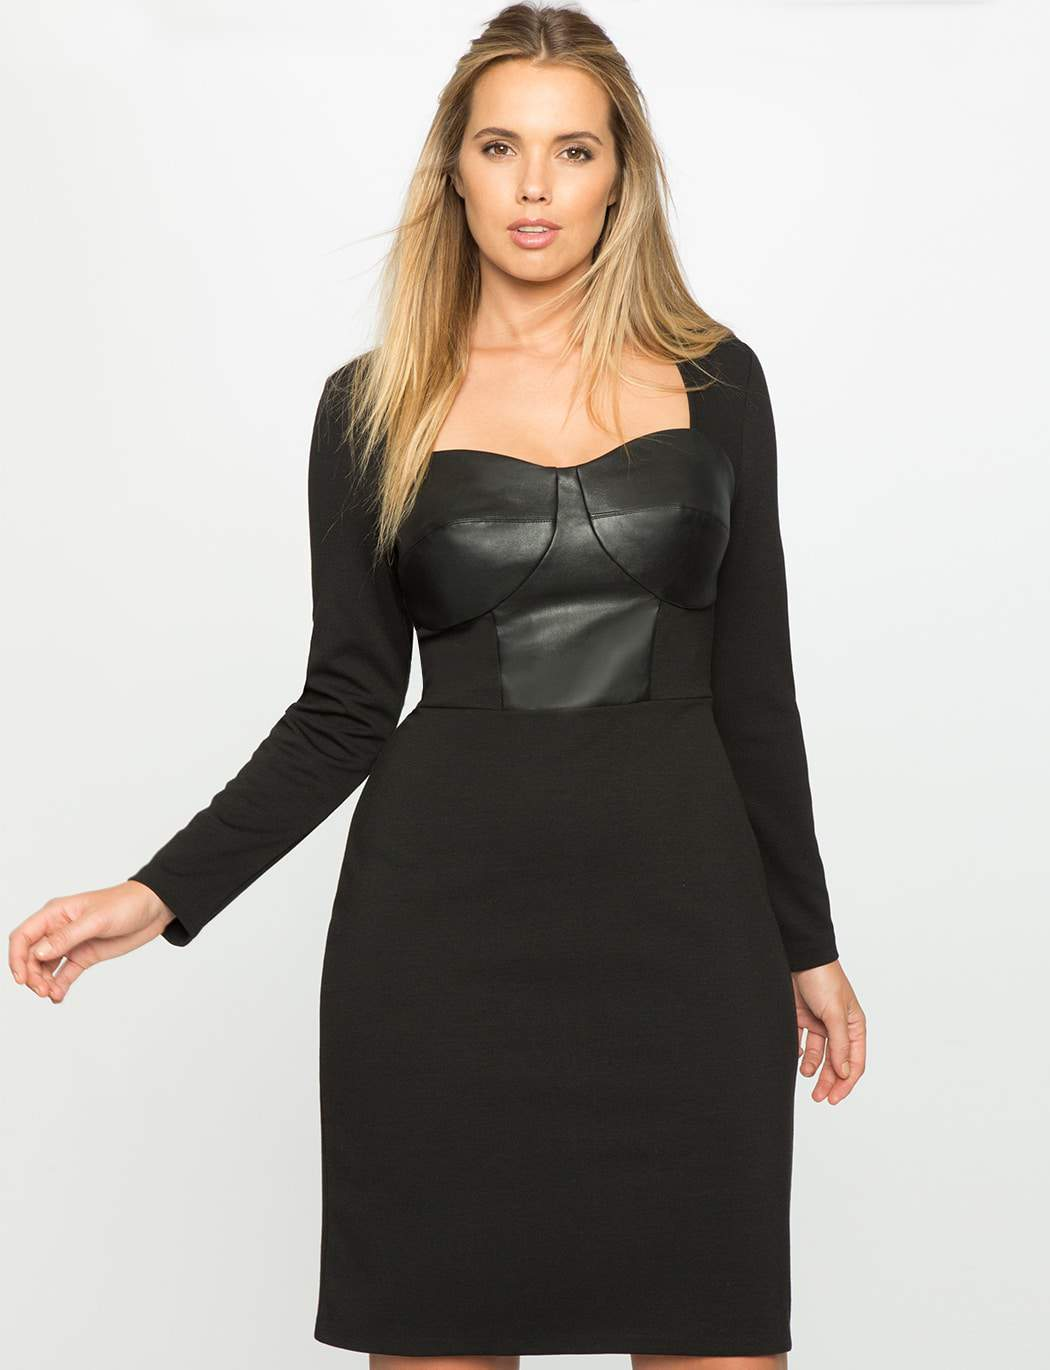 ELOQUII faux leather empire dress